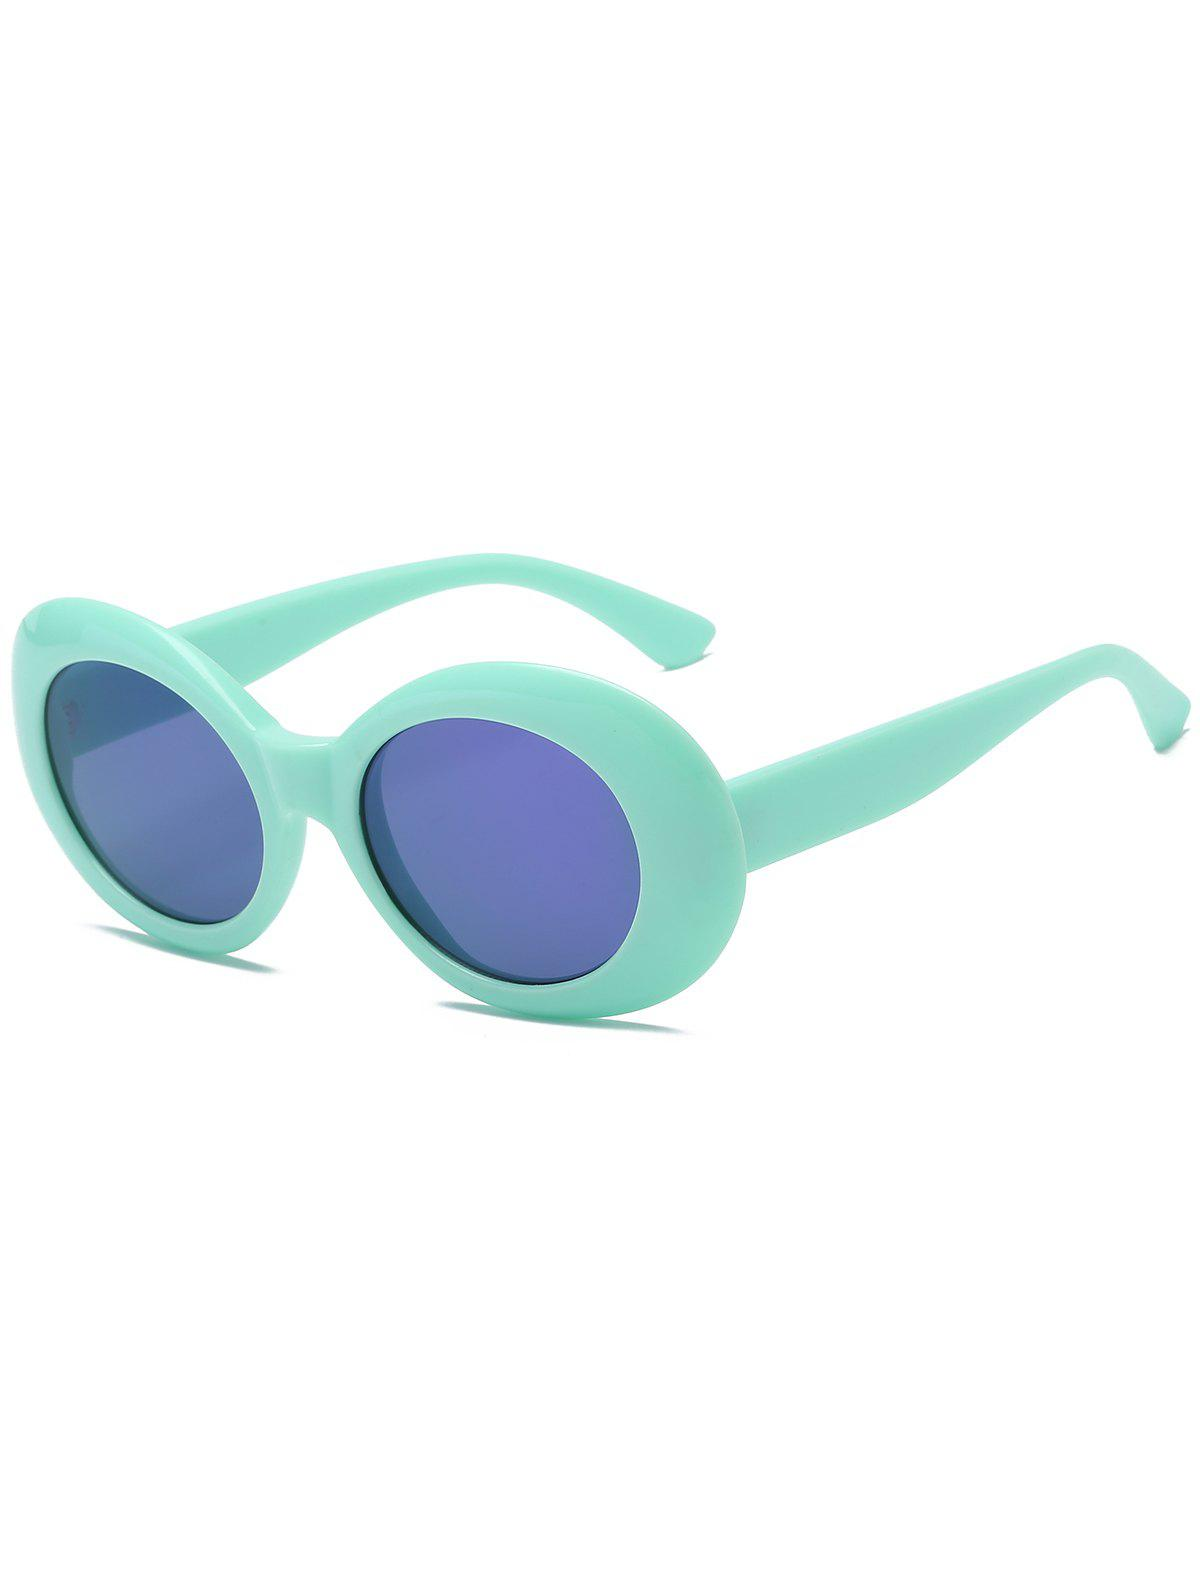 Anti Fatigue Plastic Frame Oval Sunglasses - TURQUOISE